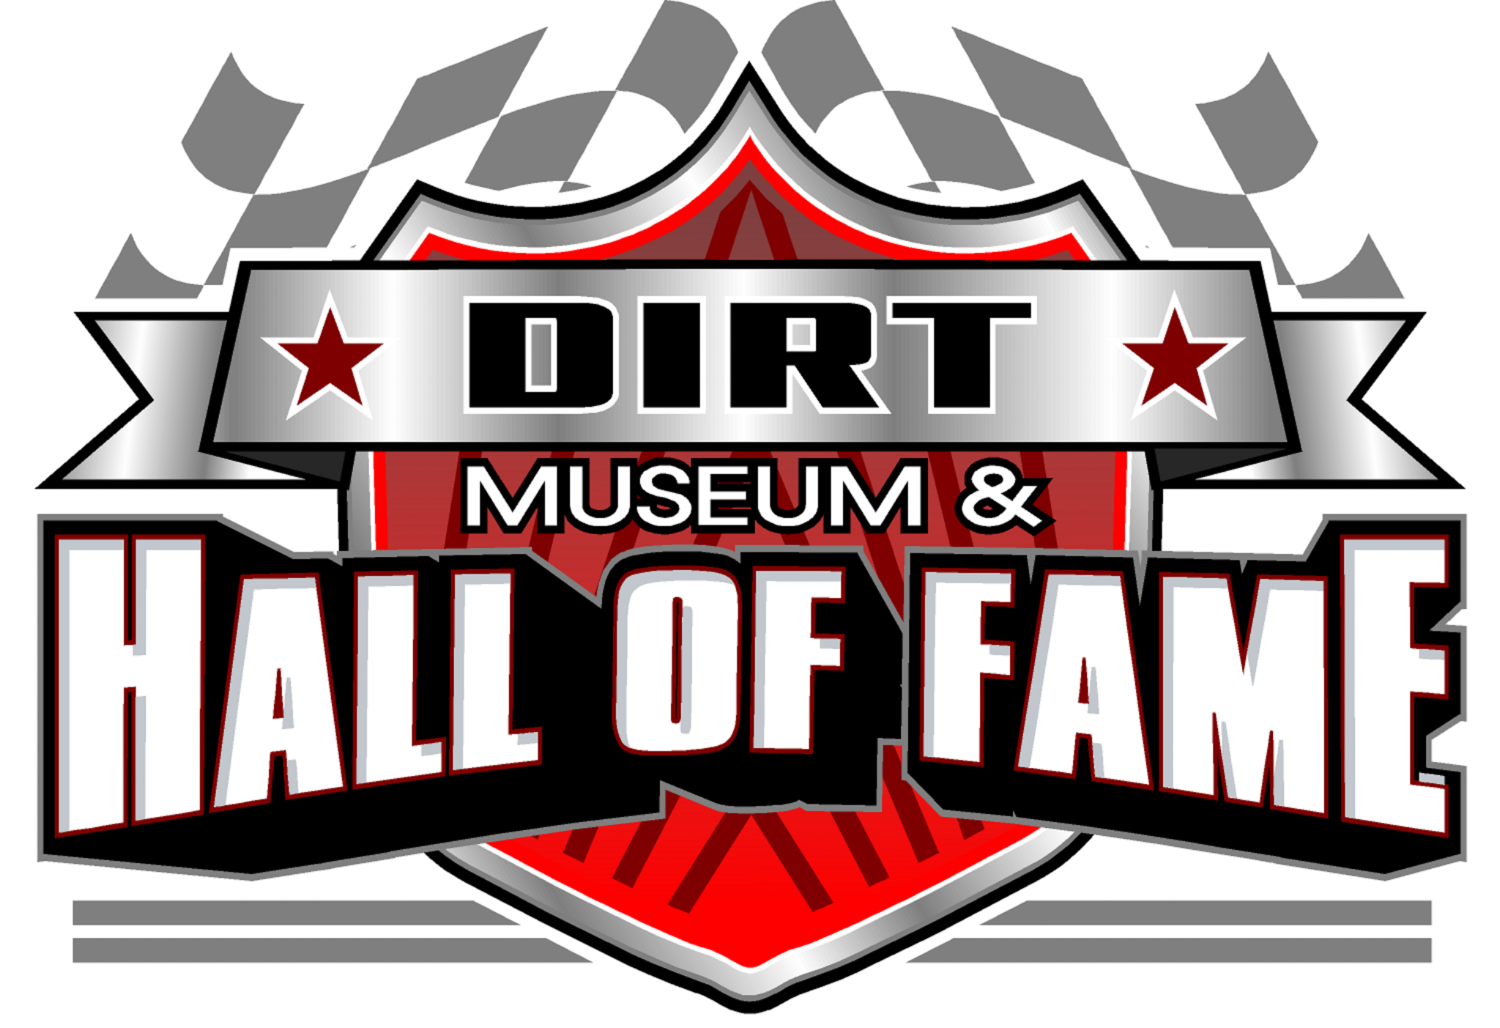 DIRT Hall of Fame & Museum